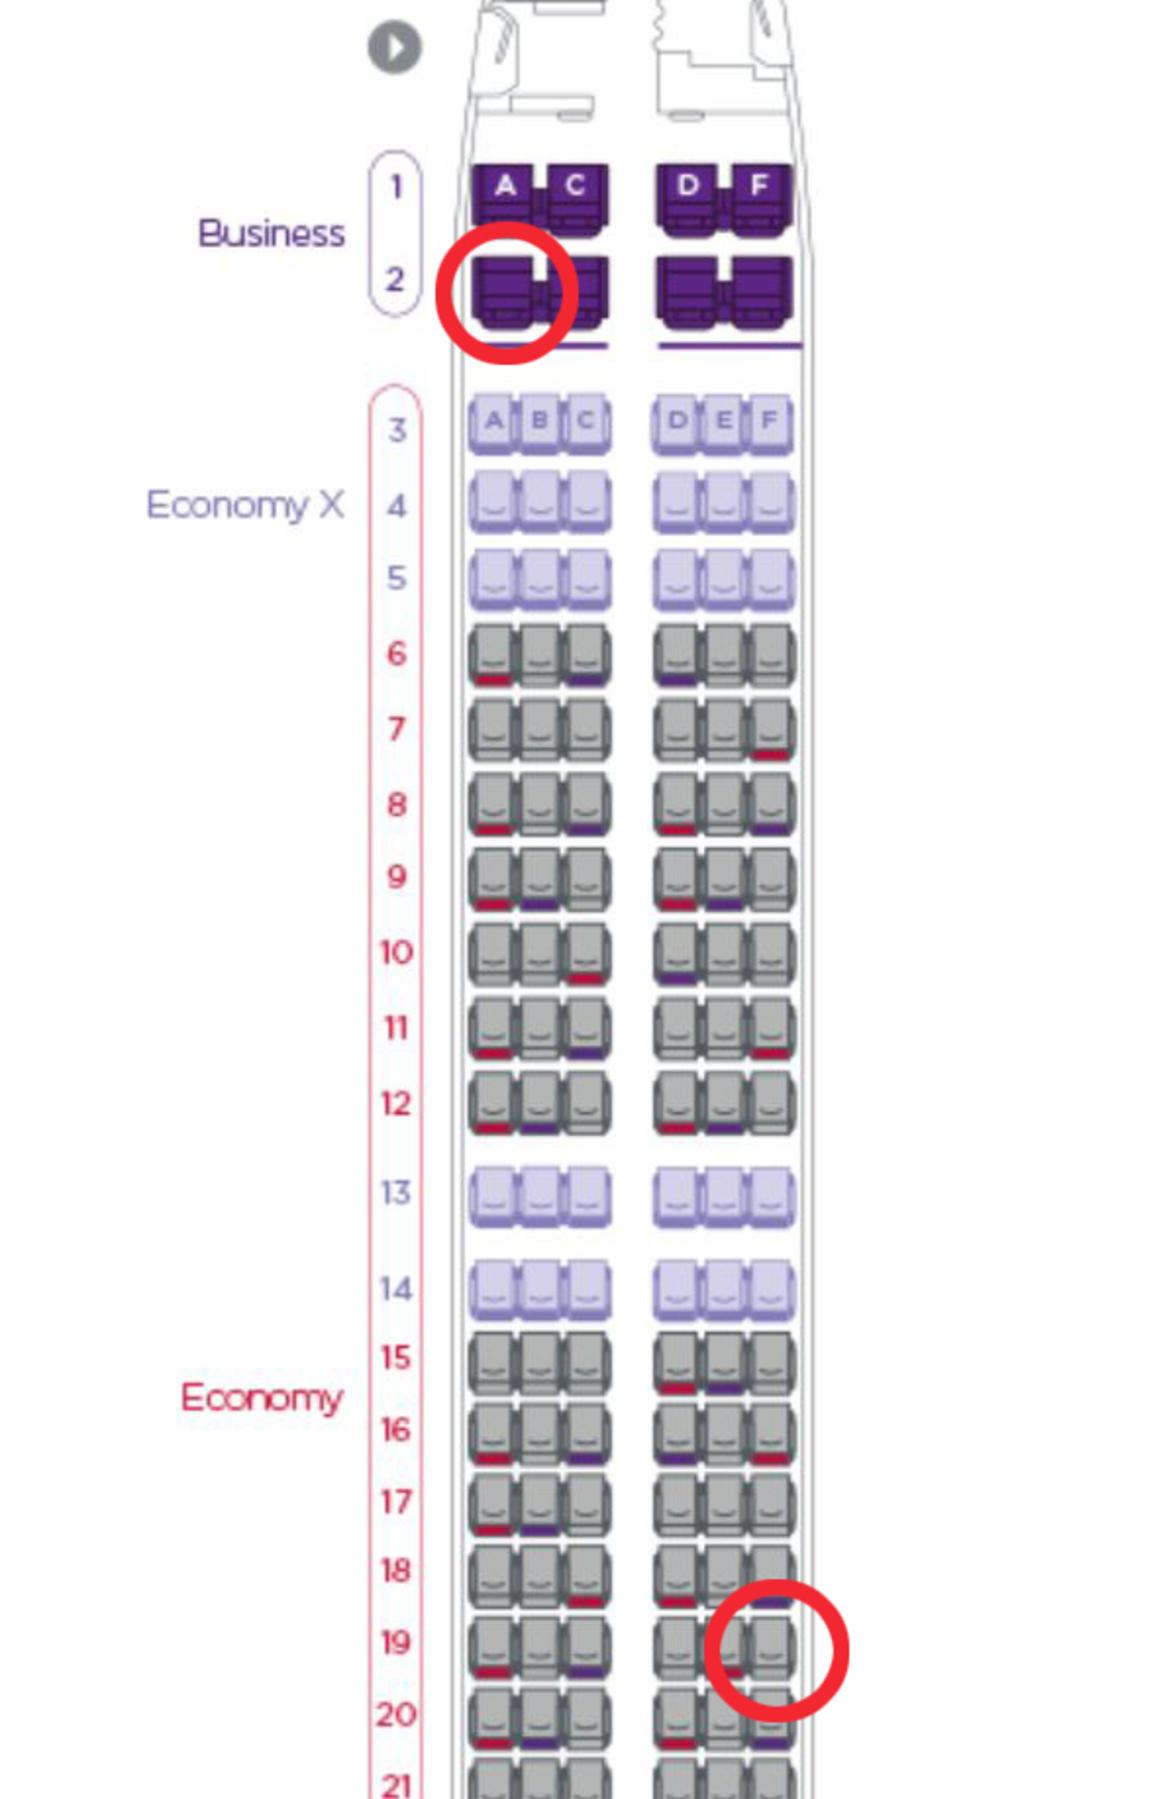 Seats 2A in business class and 19F in economy are the most popular seats on Virgin Australia flights. Picture: Virgin Australia